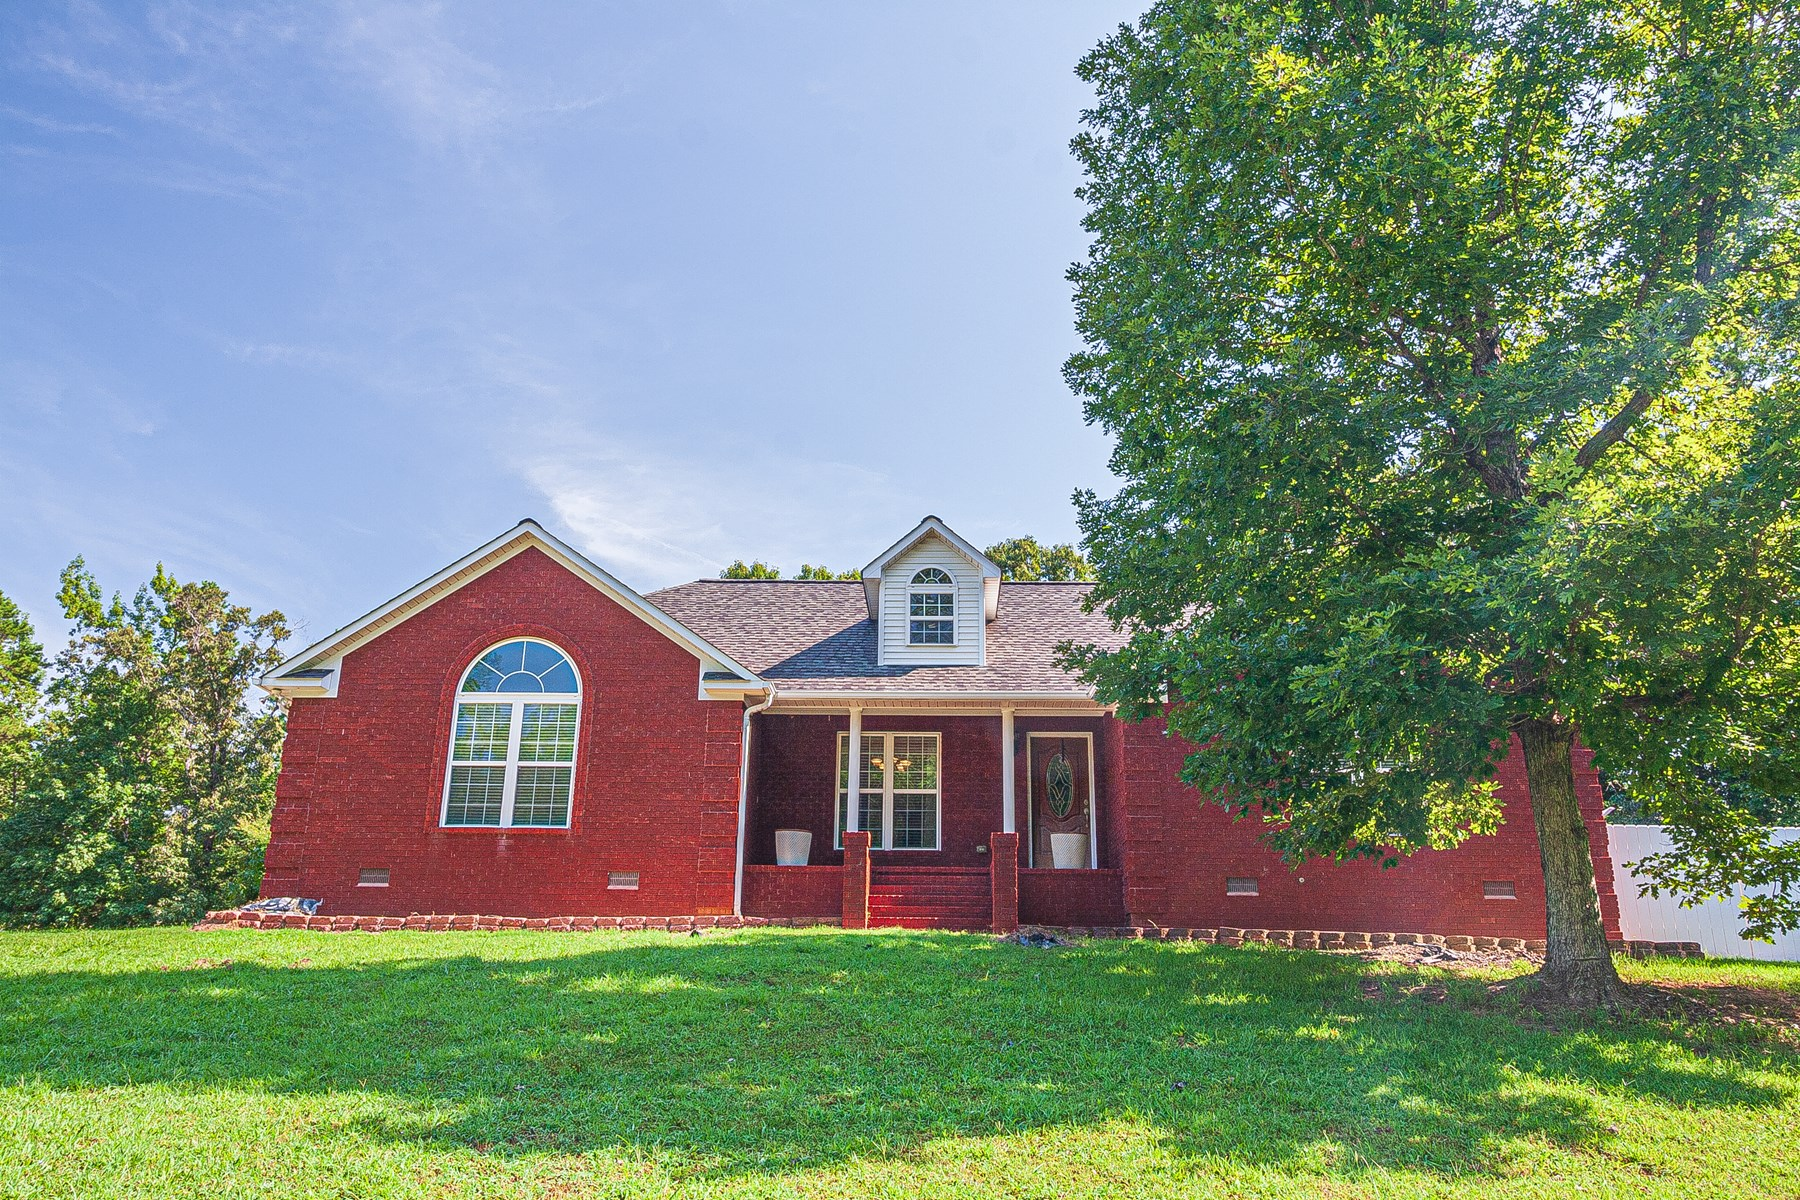 Beautiful Brick Home near Hwy 45 on over 3 Acres